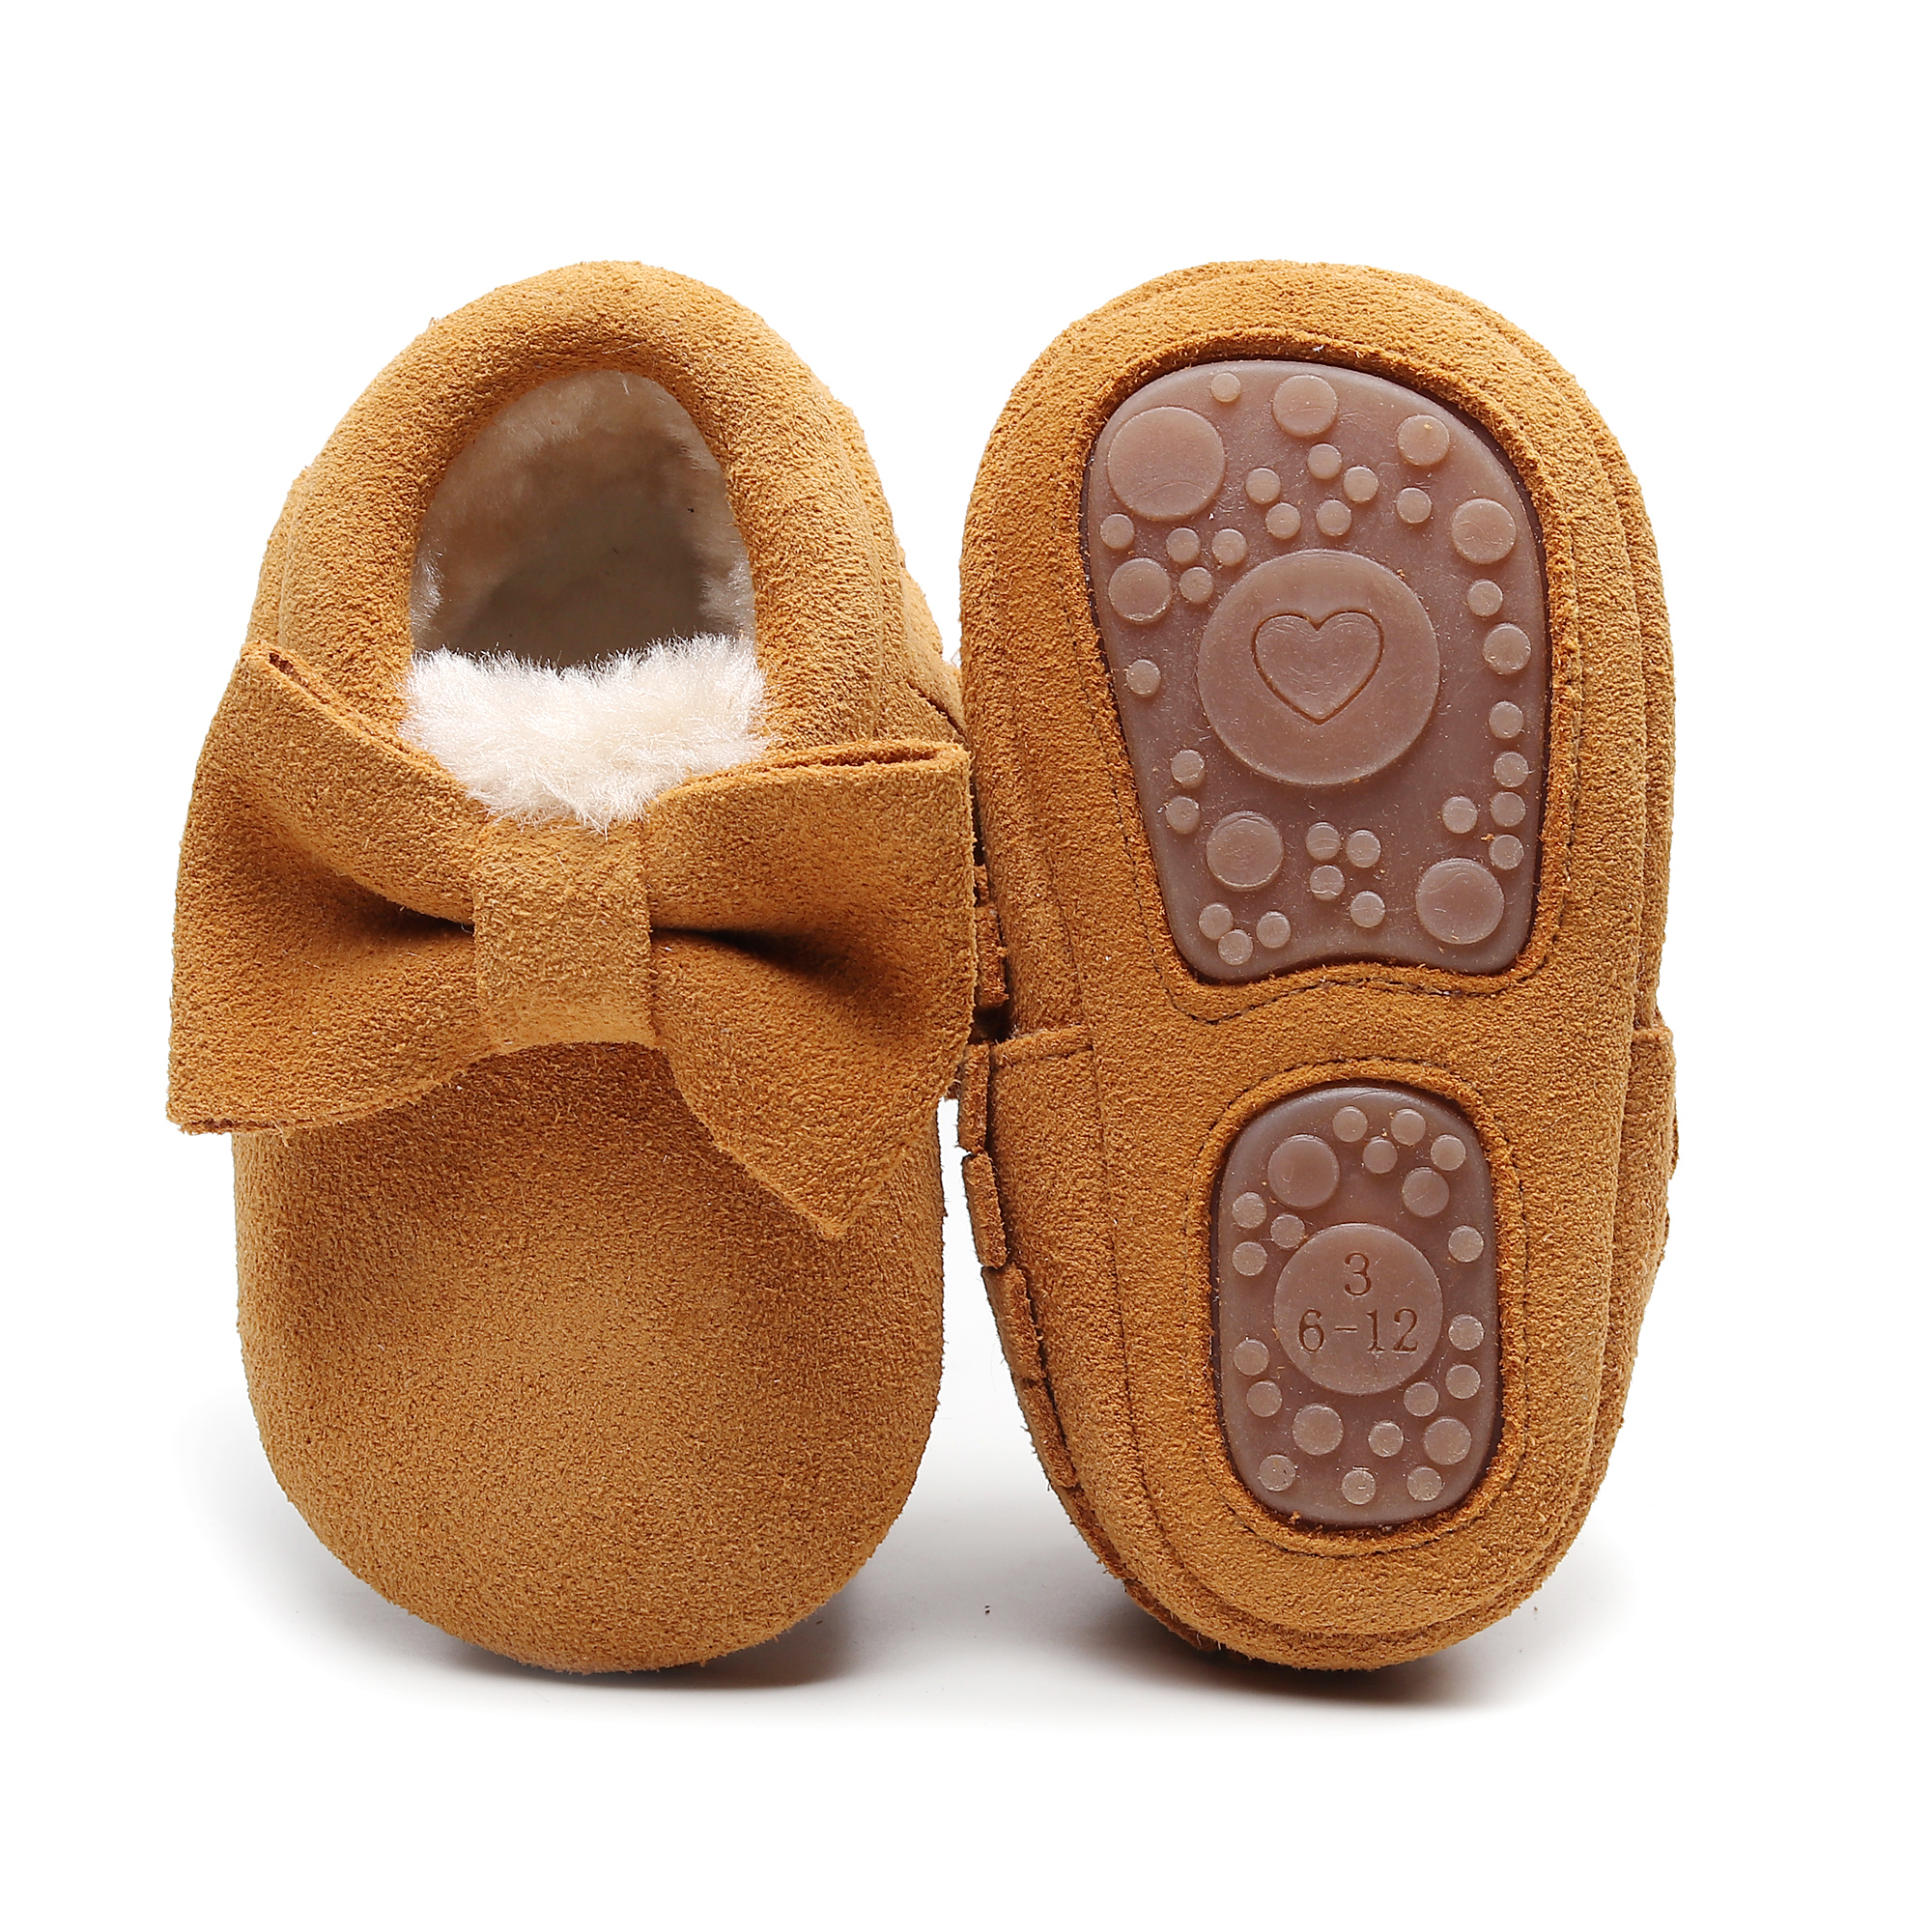 High Quality Baby Winter Suede Shoes Genuine Leather Infant Toddler Moccasins Bow Fringe Hard Rubber Sole Prewalker Warm Shoes